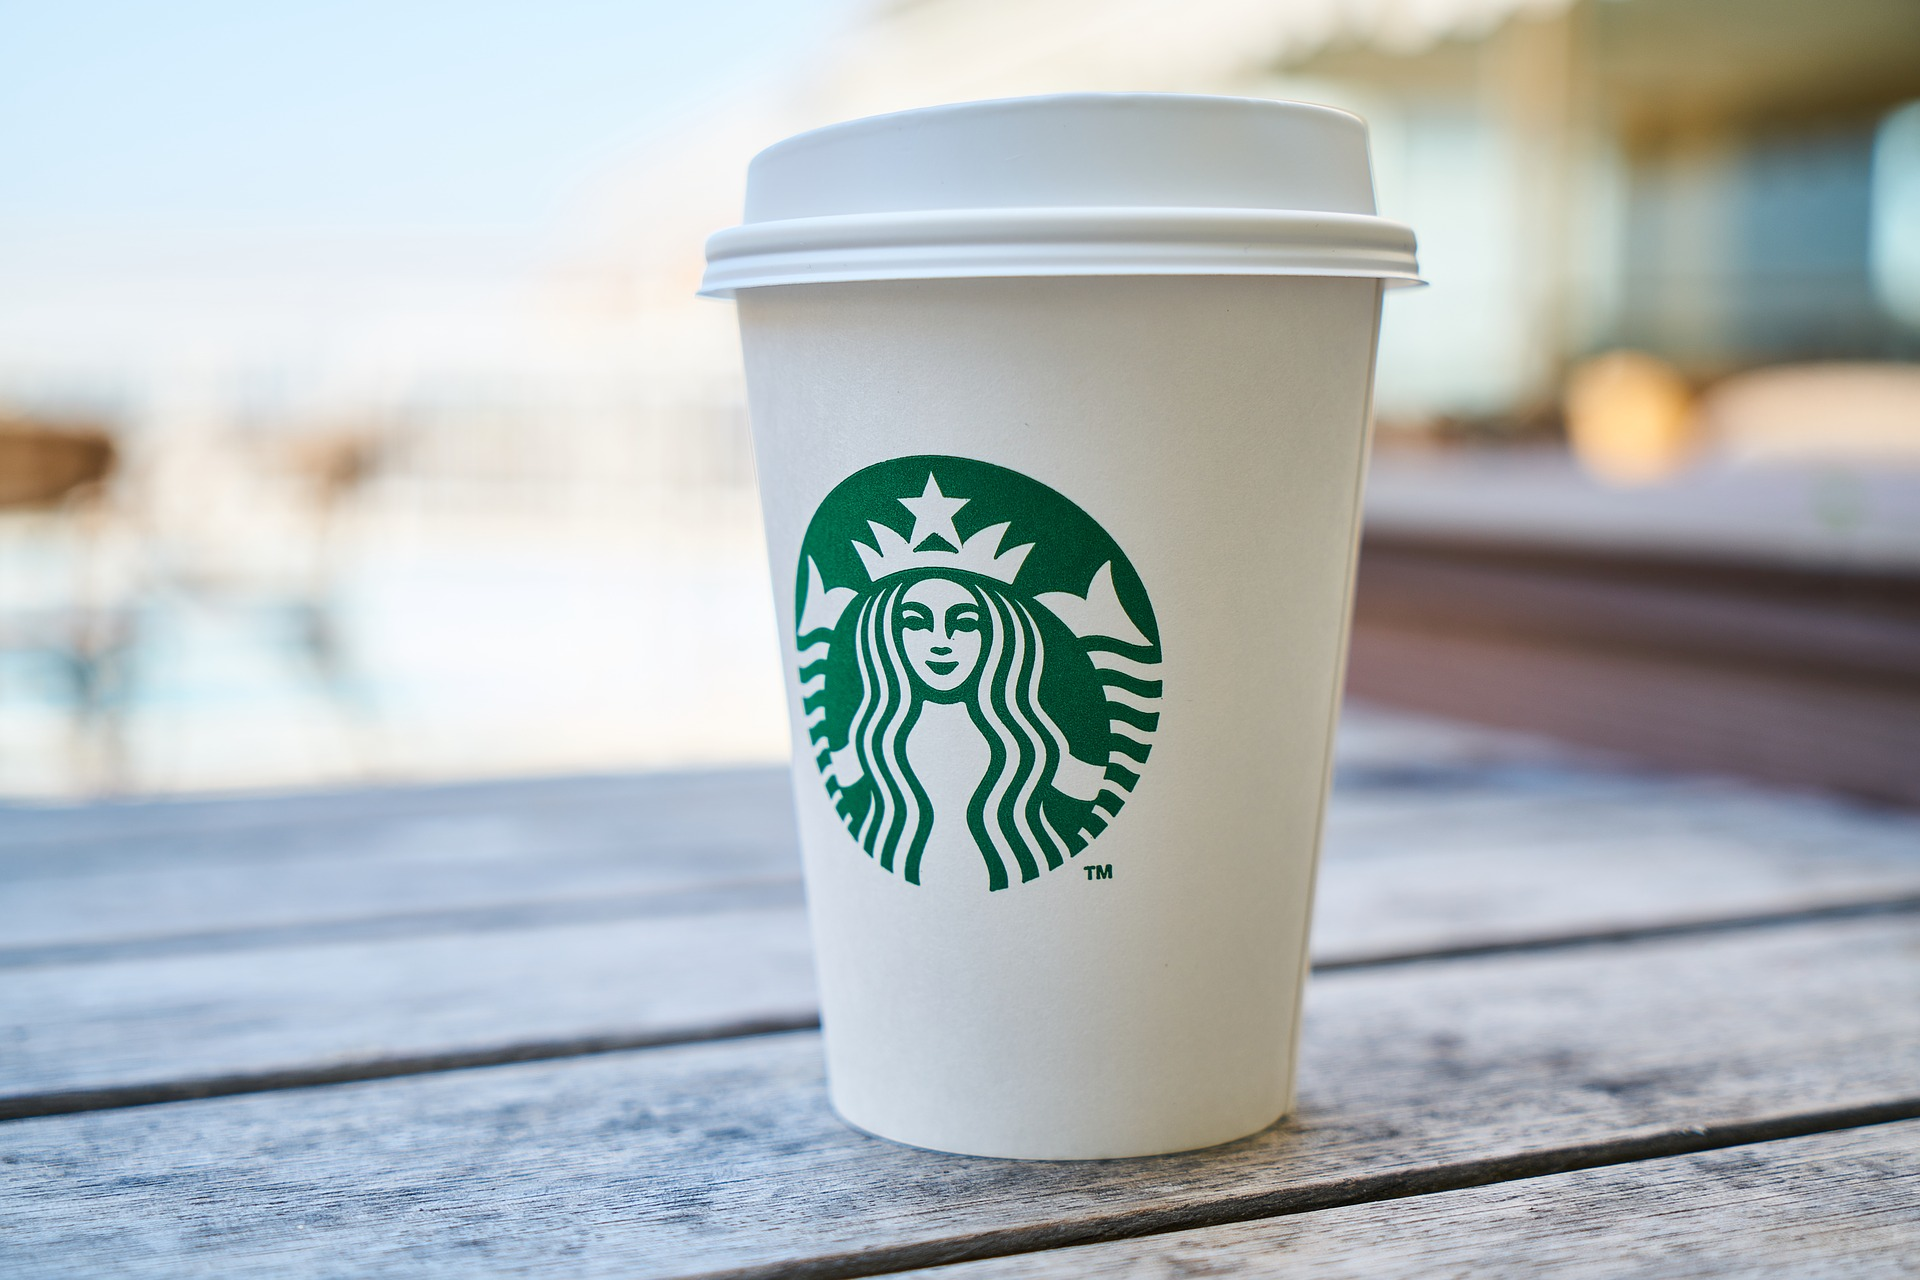 A Starbucks coffee cup and lid